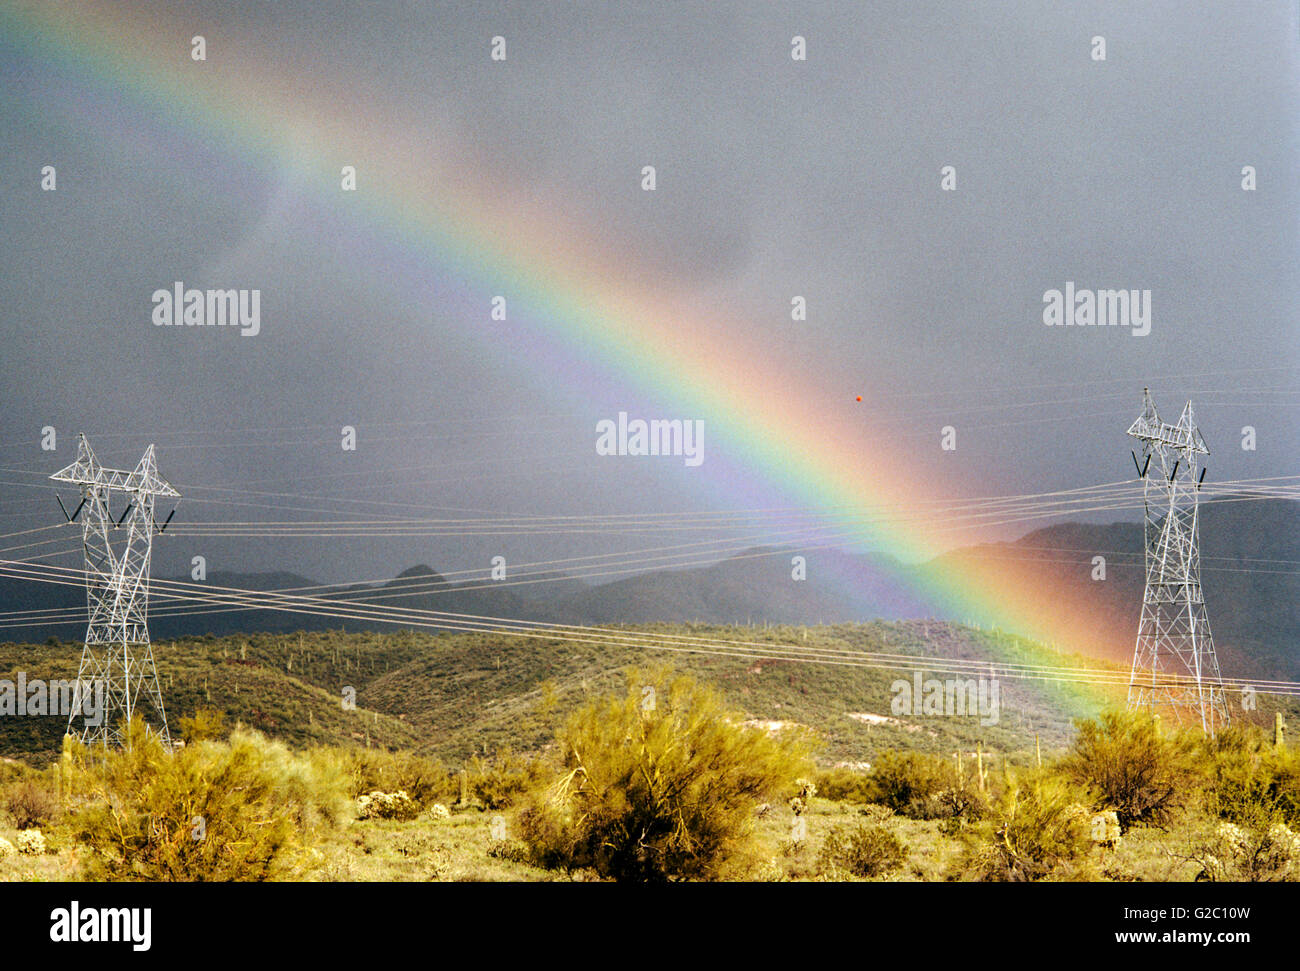 Electrical transmission lines and towers with a vivid, dramatic rainbow in the desert north of Phoenix, Arizona, - Stock Image